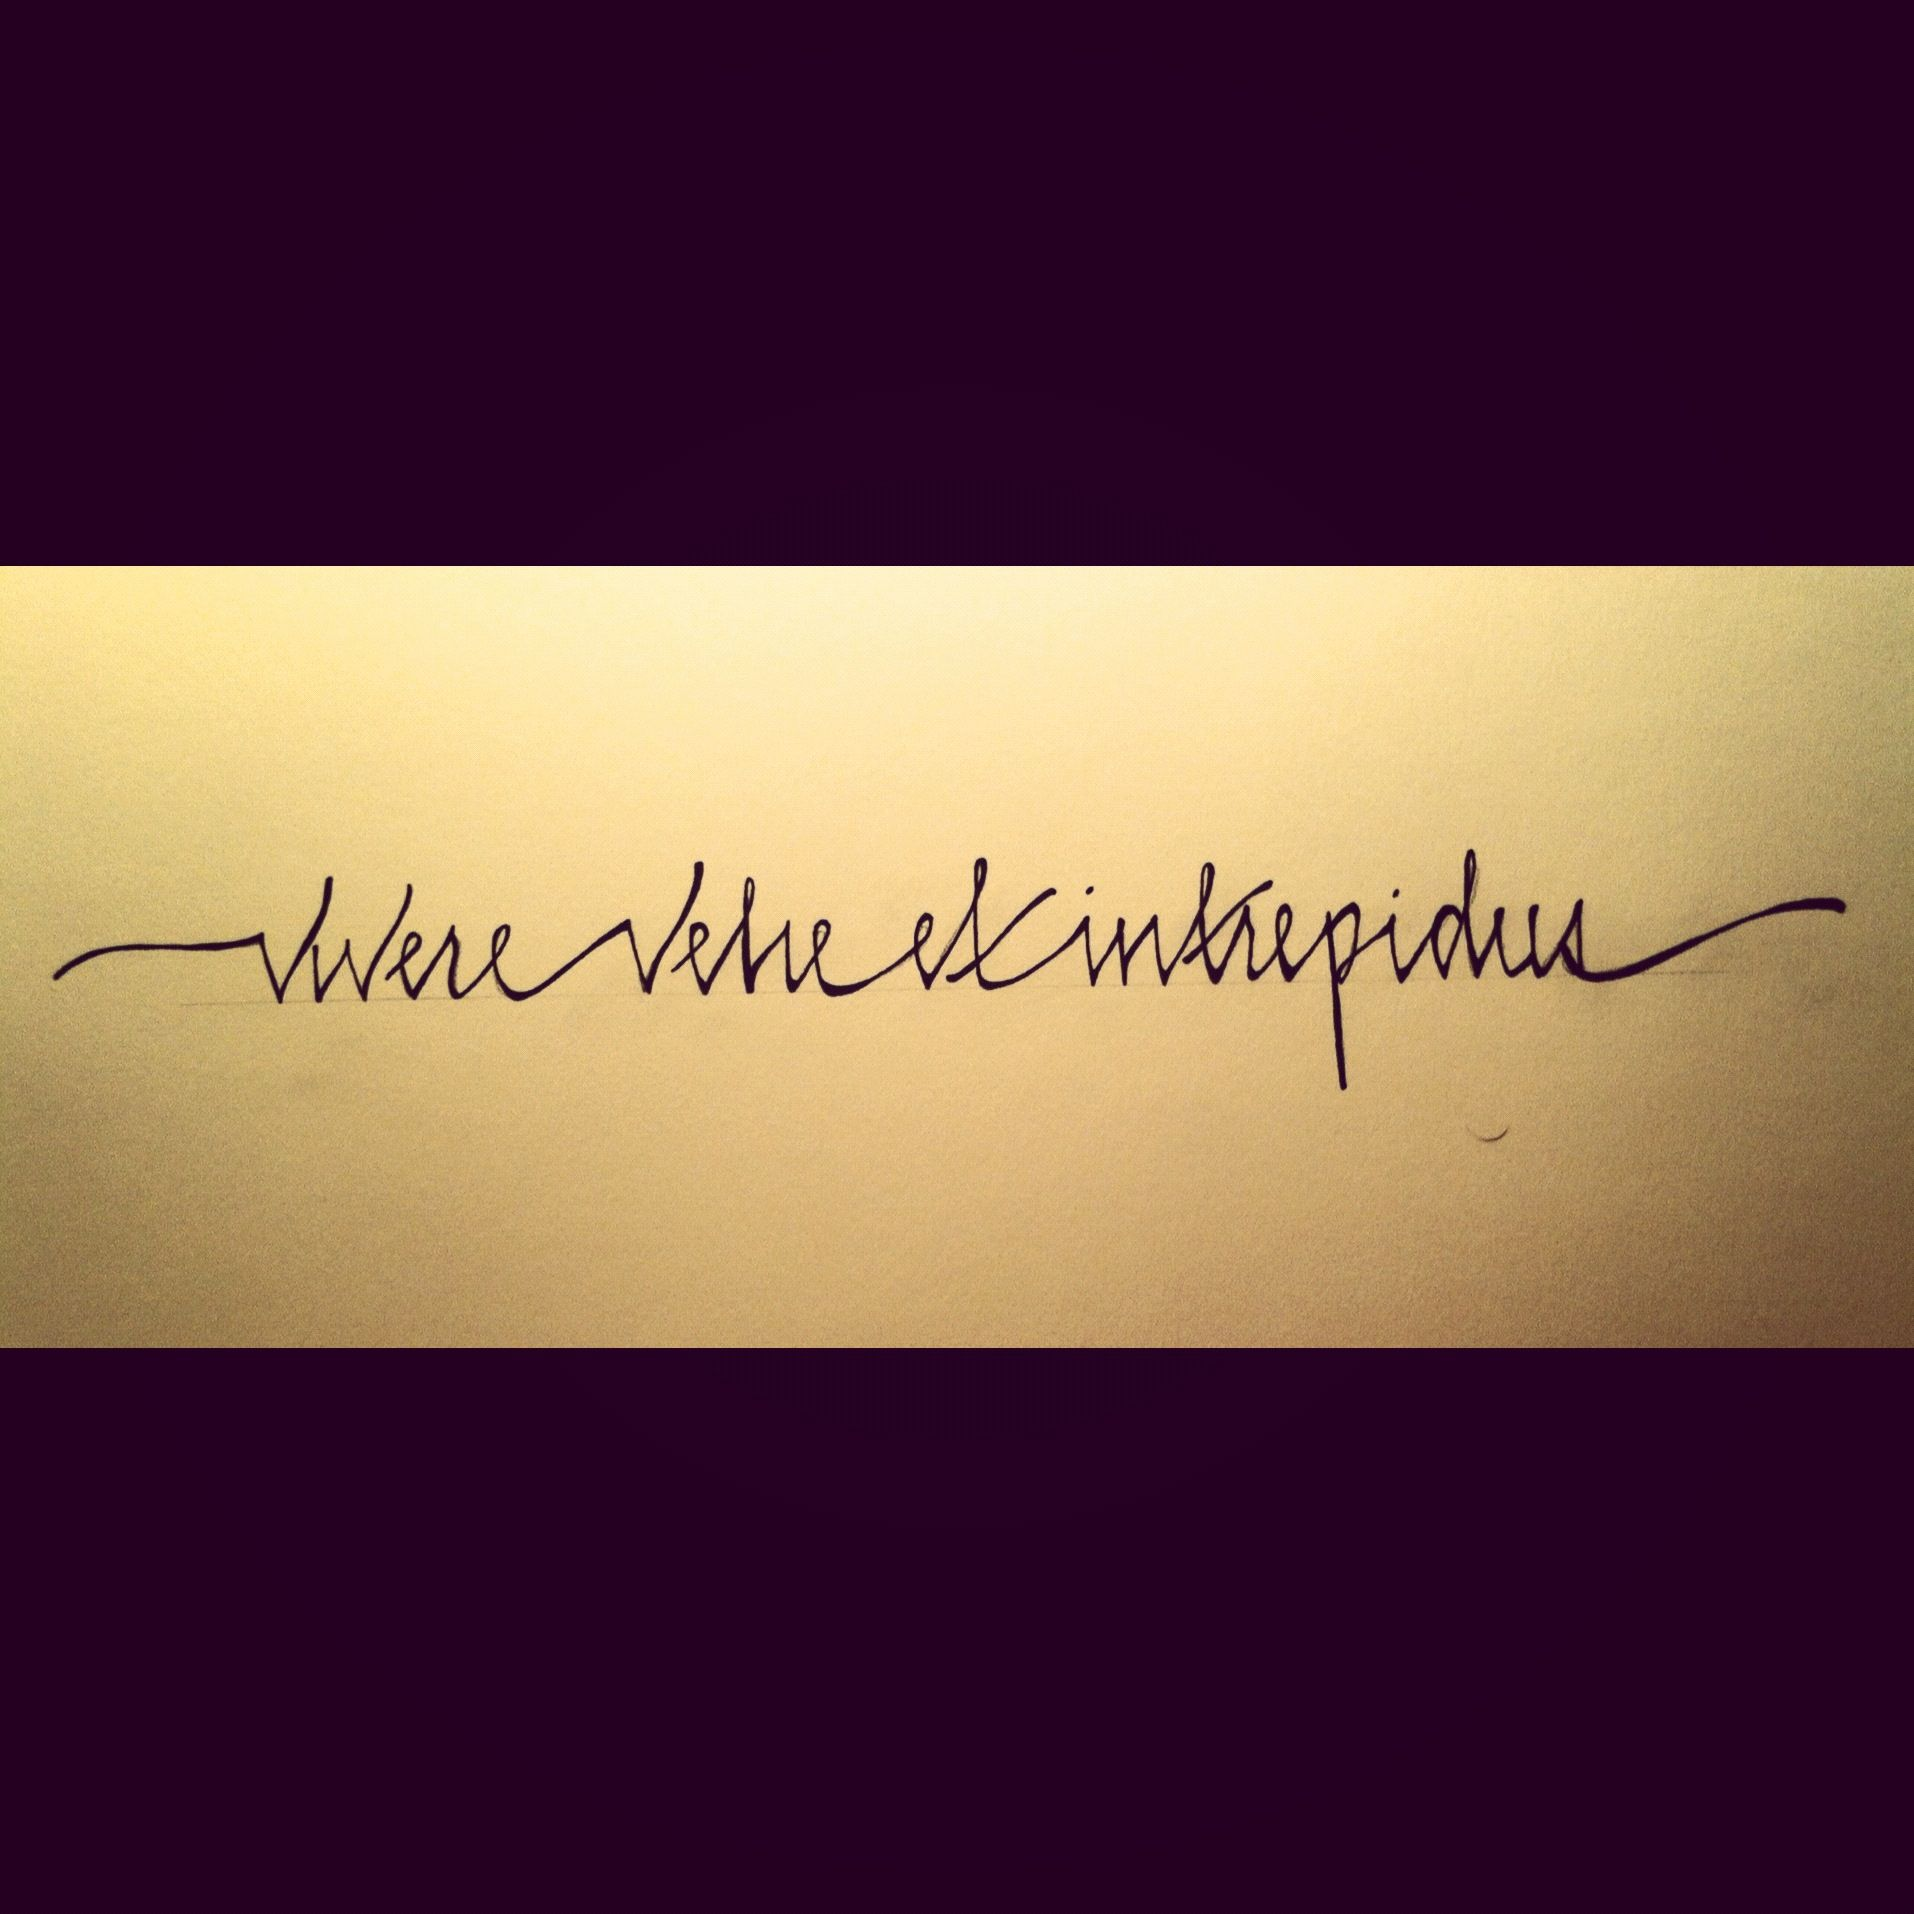 """""""vivere vehe et intrepidus""""... """"Live passionately and fearlessly"""""""